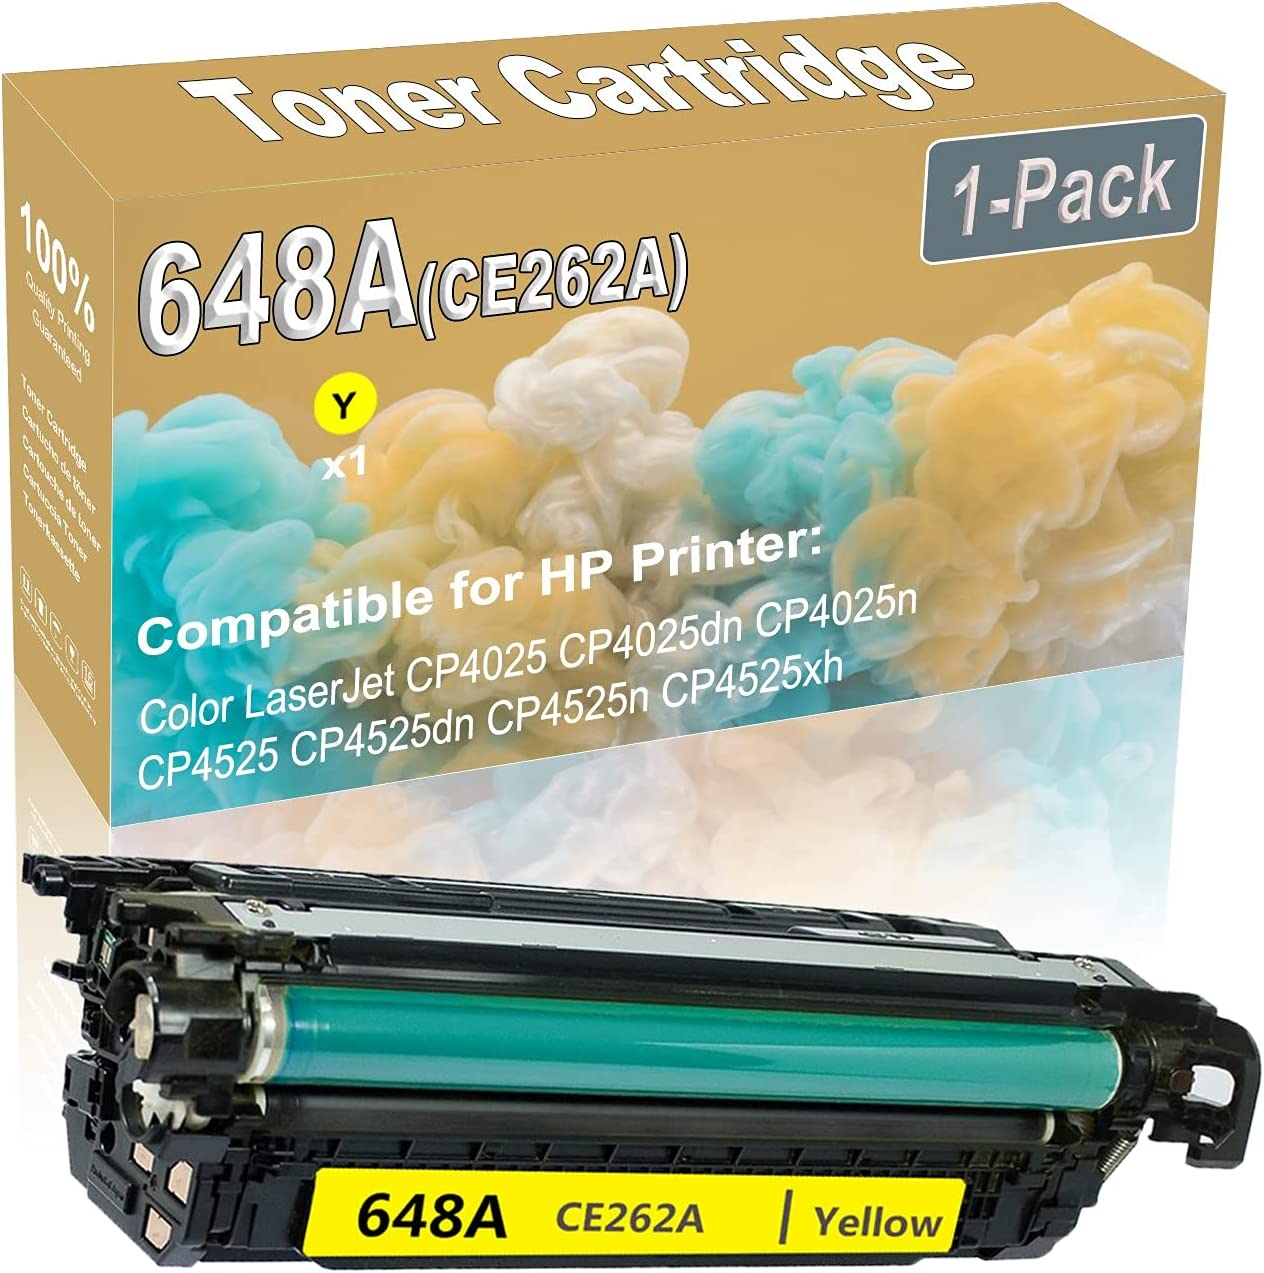 1-Pack (Yellow) Compatible CP4025 CP4025dn Laser Toner Cartridge (High Capacity) Replacement for HP 648A (CE262A) Printer Toner Cartridge